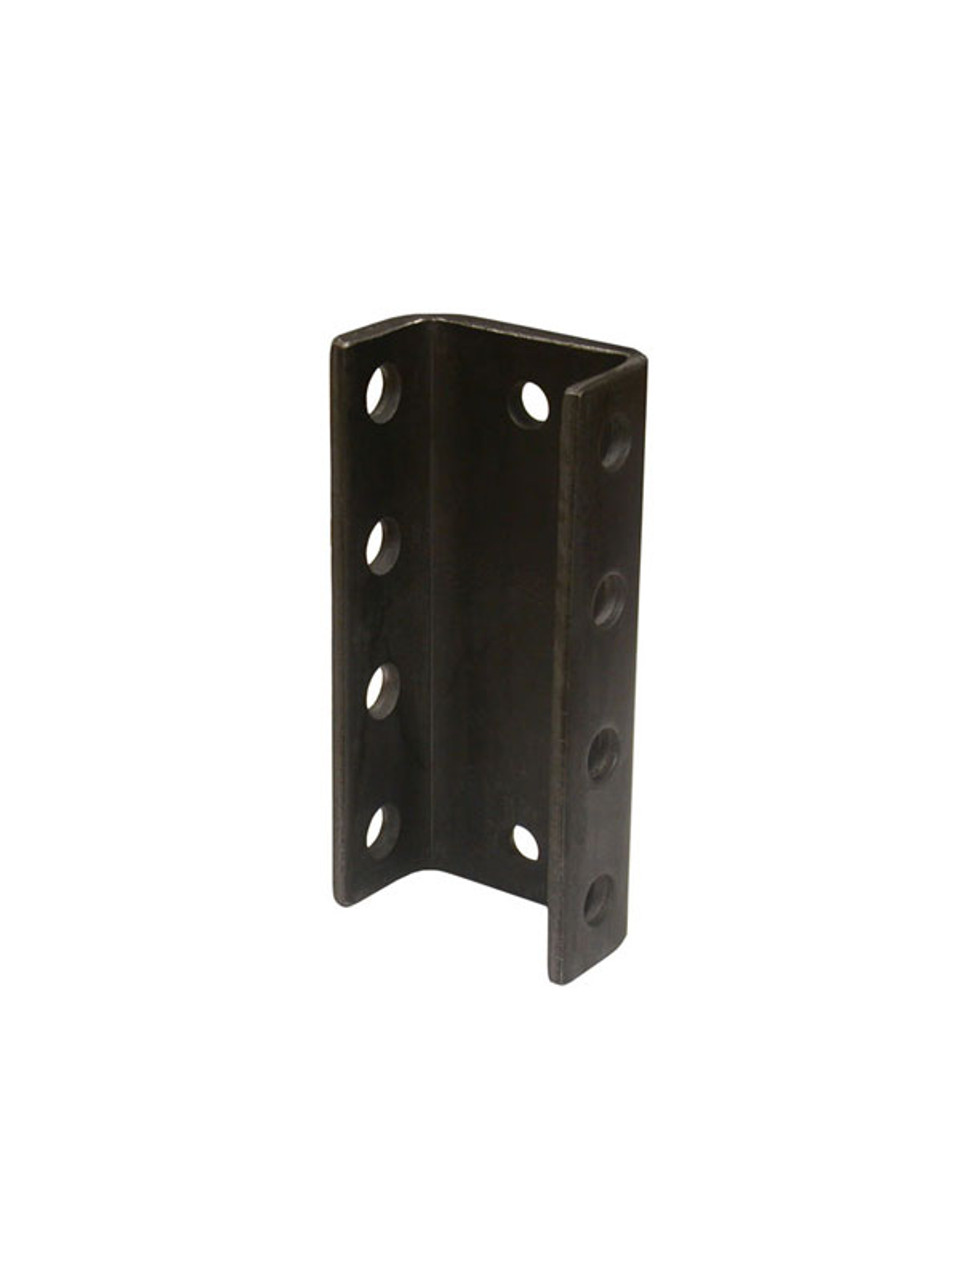 8978 --- Adjustable Channel with 4 Hole Sets - 12,000 lb - Weld On